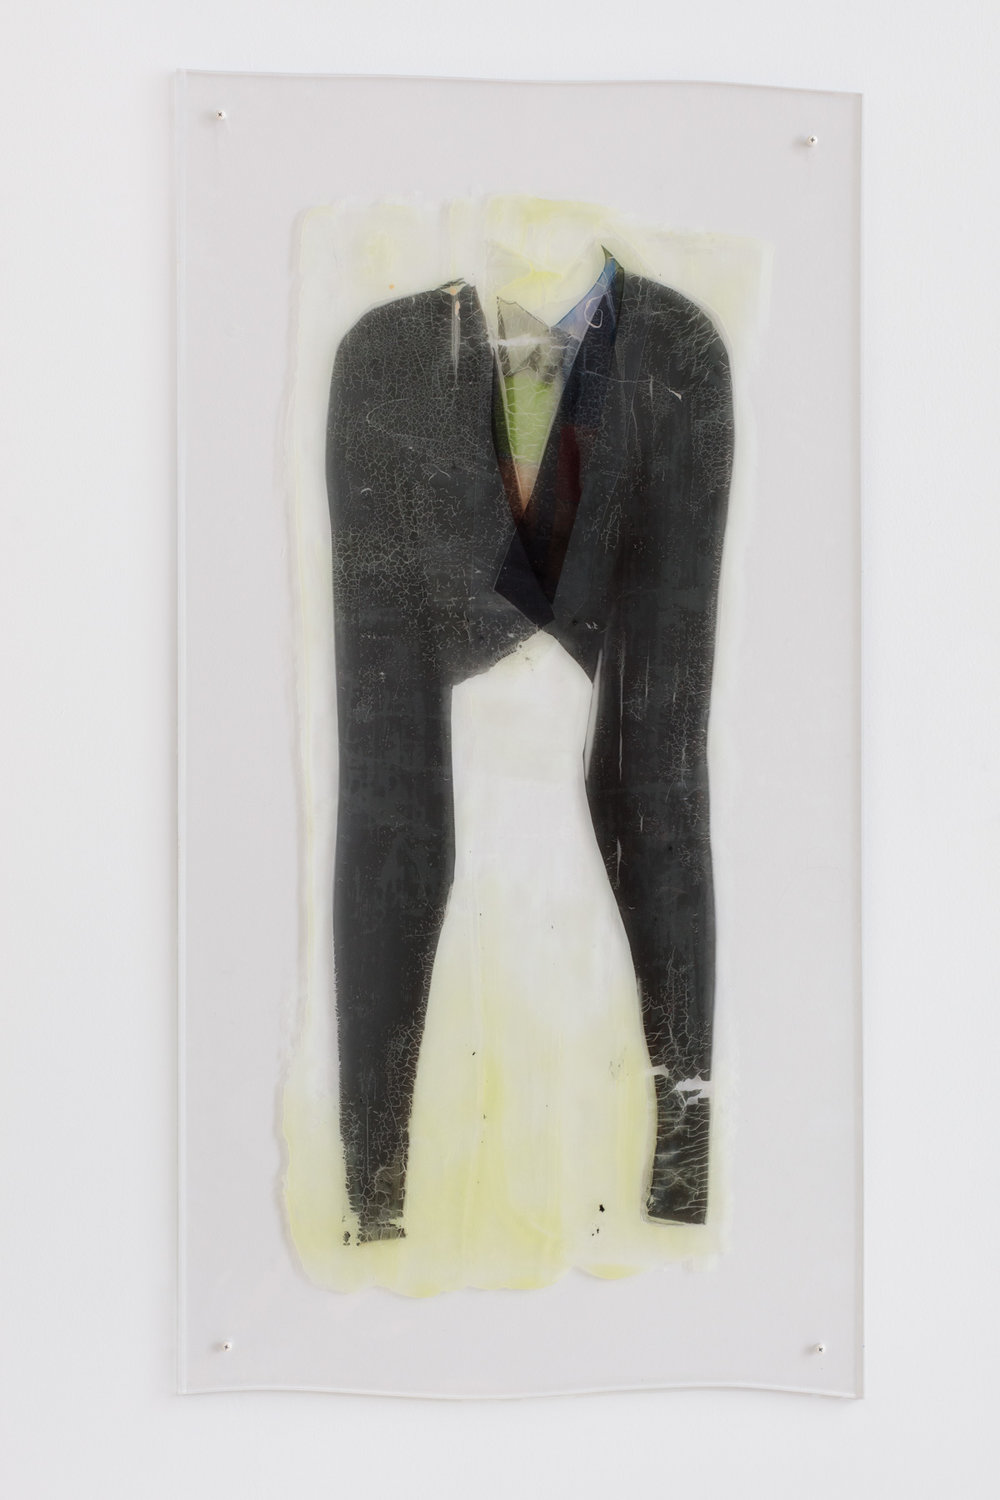 Sara Greenberger Rafferty   Body Suit with Tie   46.5 inches x 25 inches x .5 inches  Acrylic polymer and inket prints on acetate on Plexi, hardware  2016